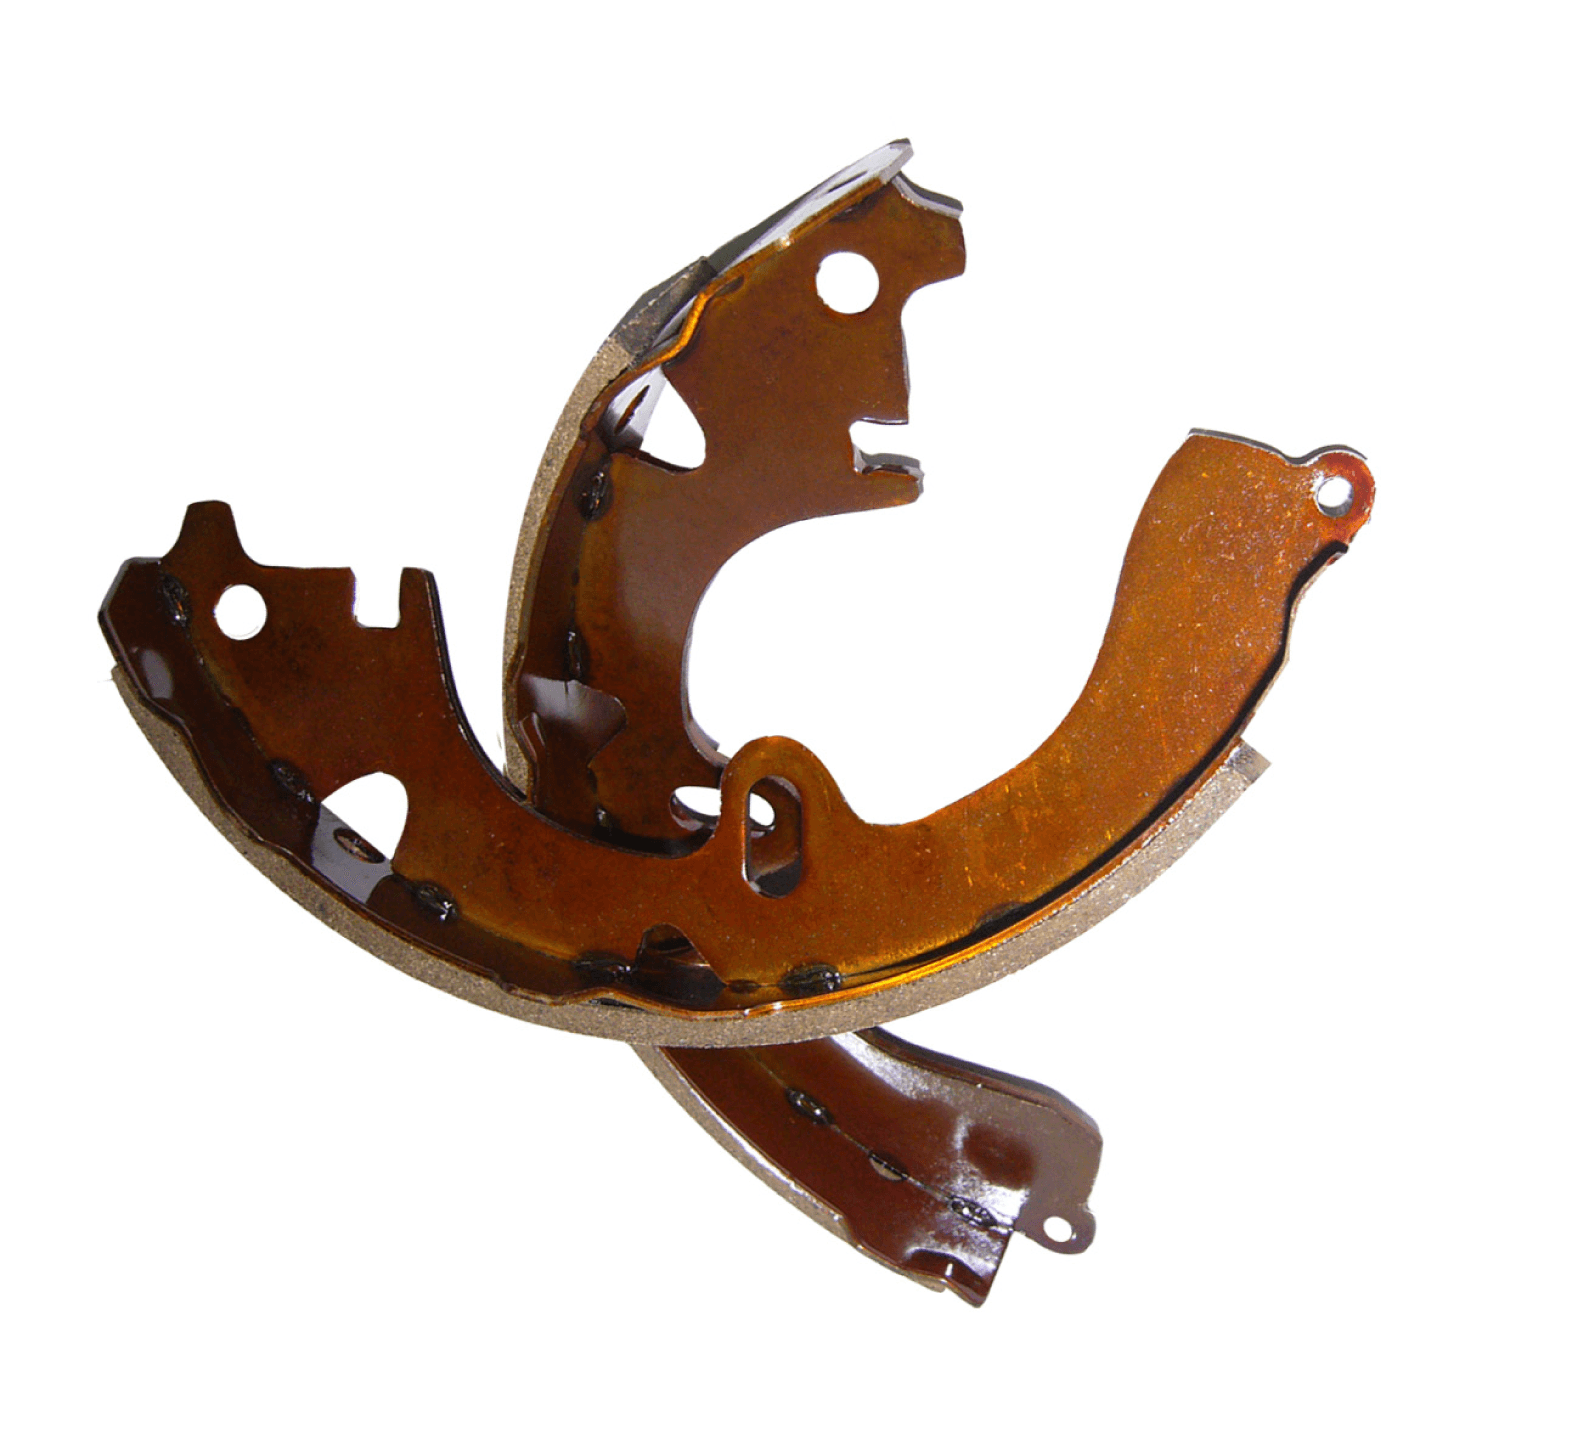 Automobile  Brake Shoes for Brake Systems made by Taiwan Brake Technology Corp. 勤晟工業股份有限公司 - MatchSupplier.com